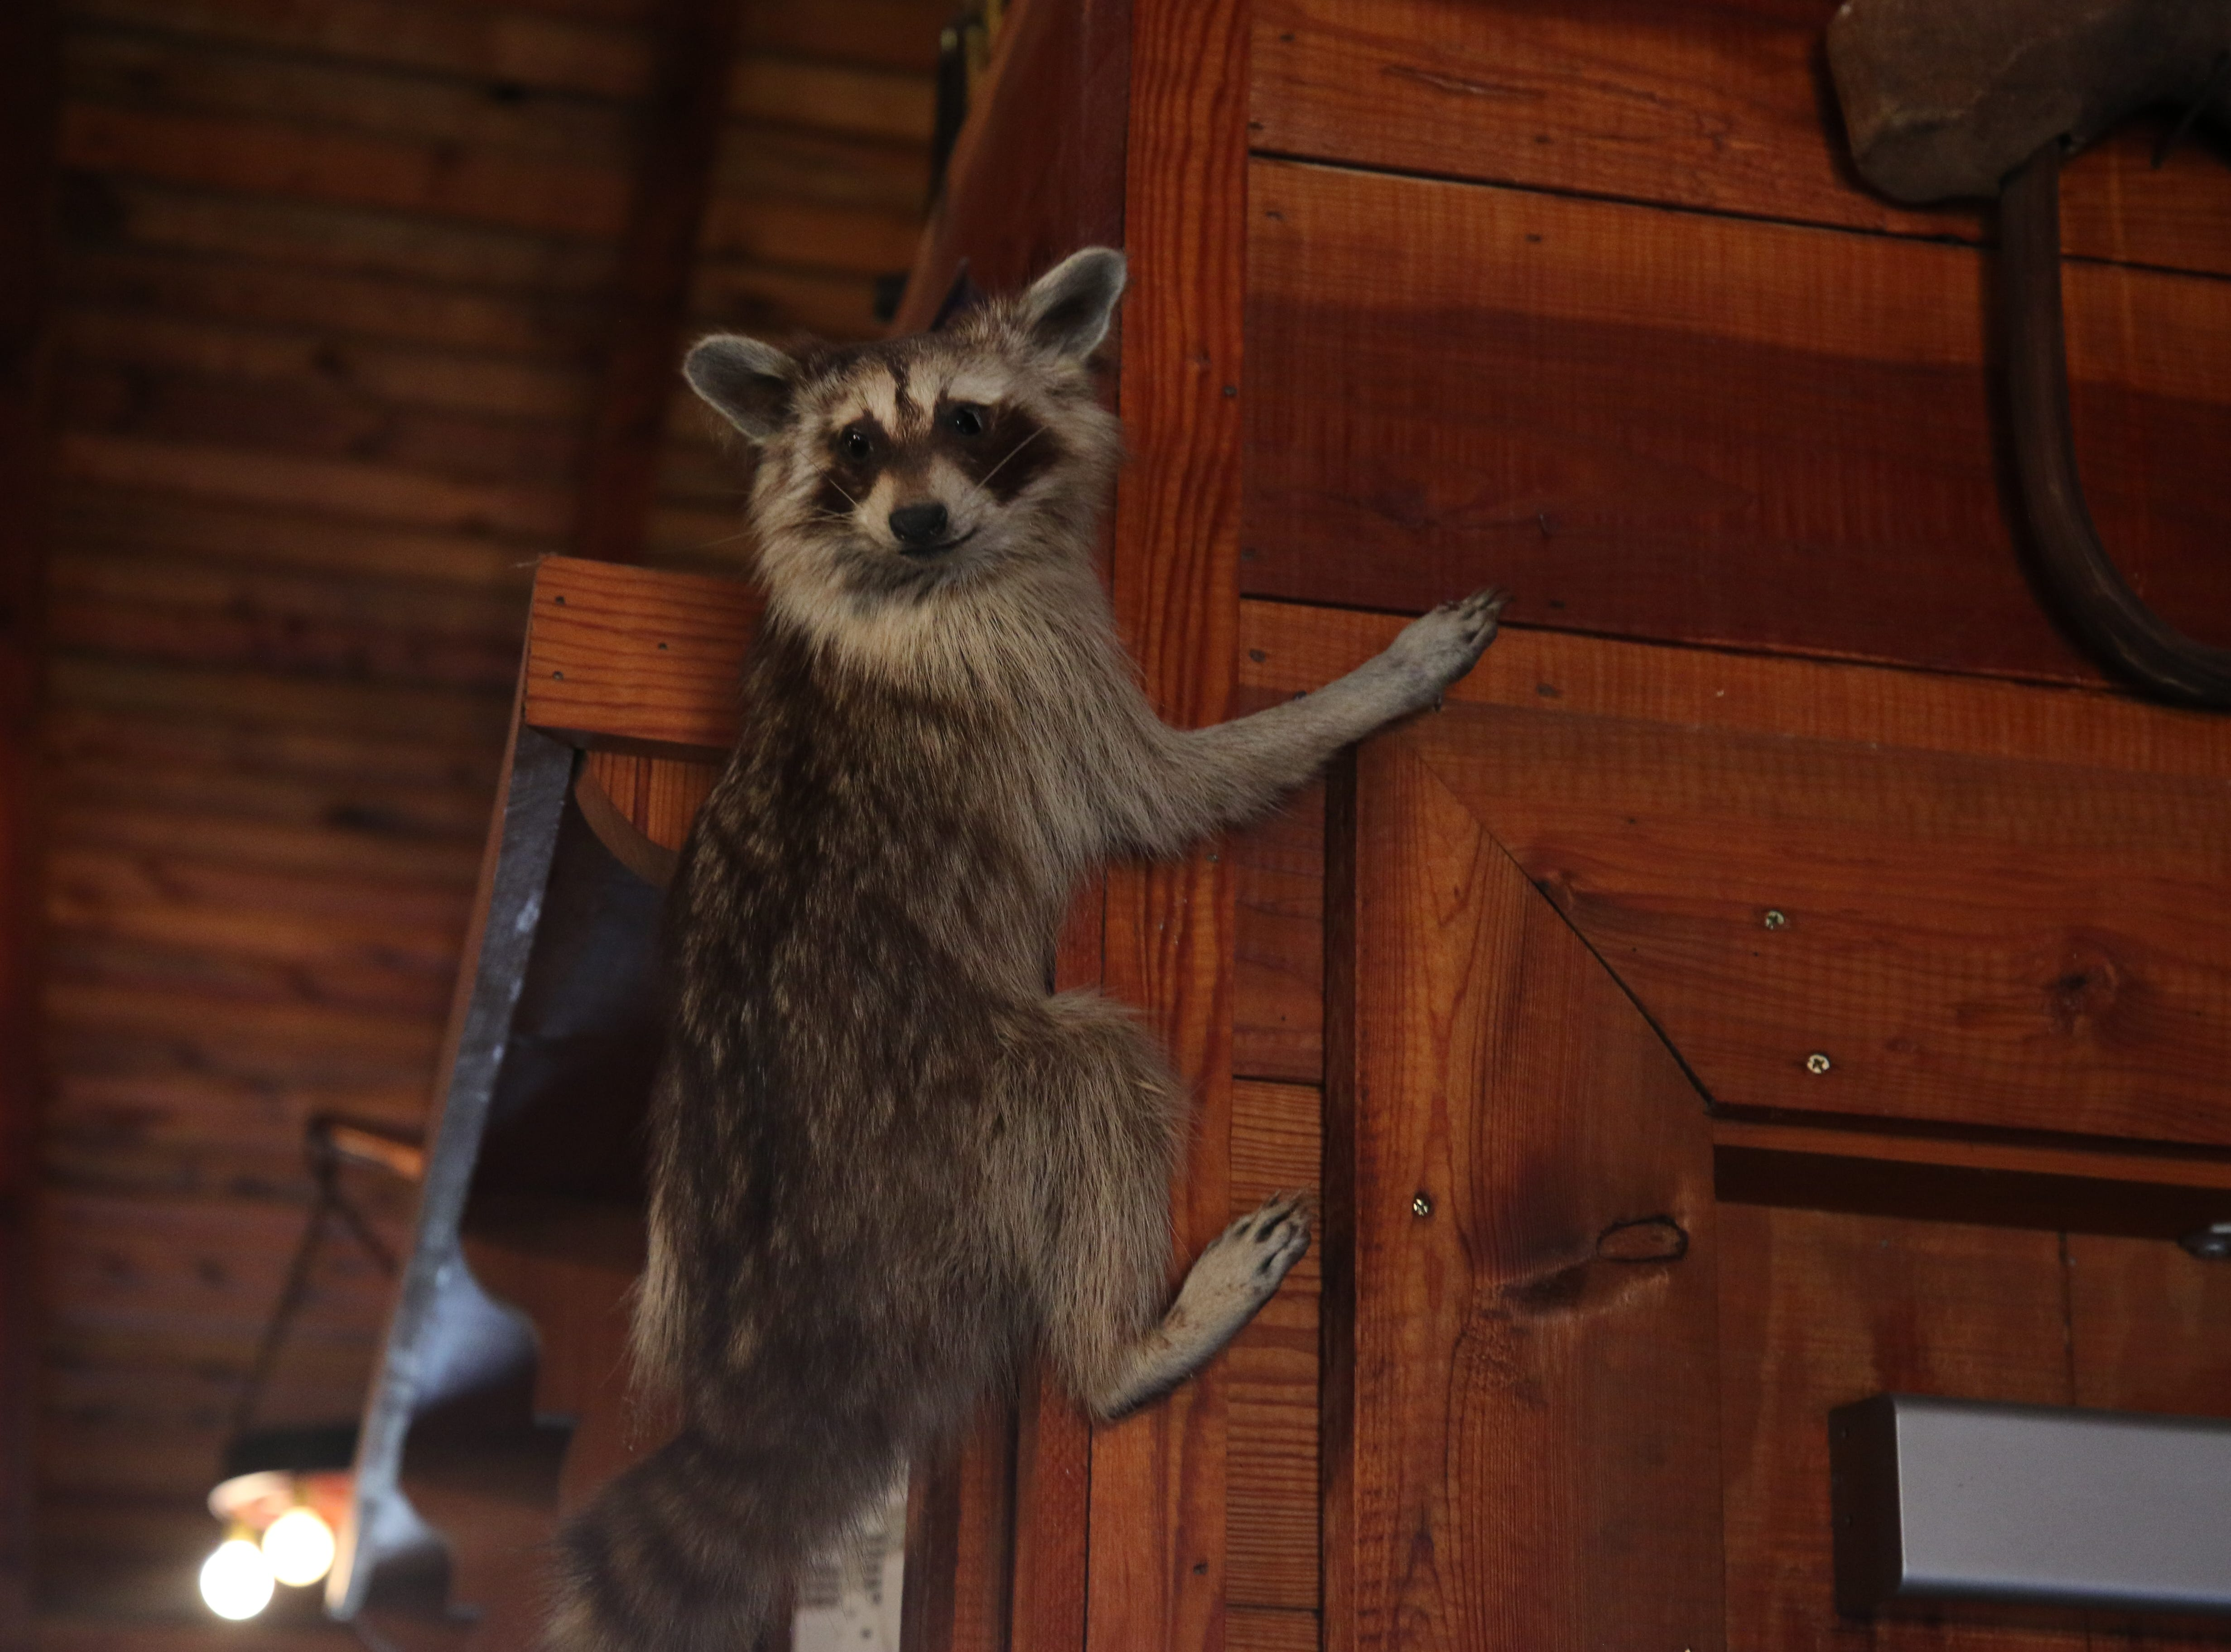 A stuffed raccoon hangs on the wall, Feb. 21 at Red Chimney Bar-B-Q in Carlsbad.